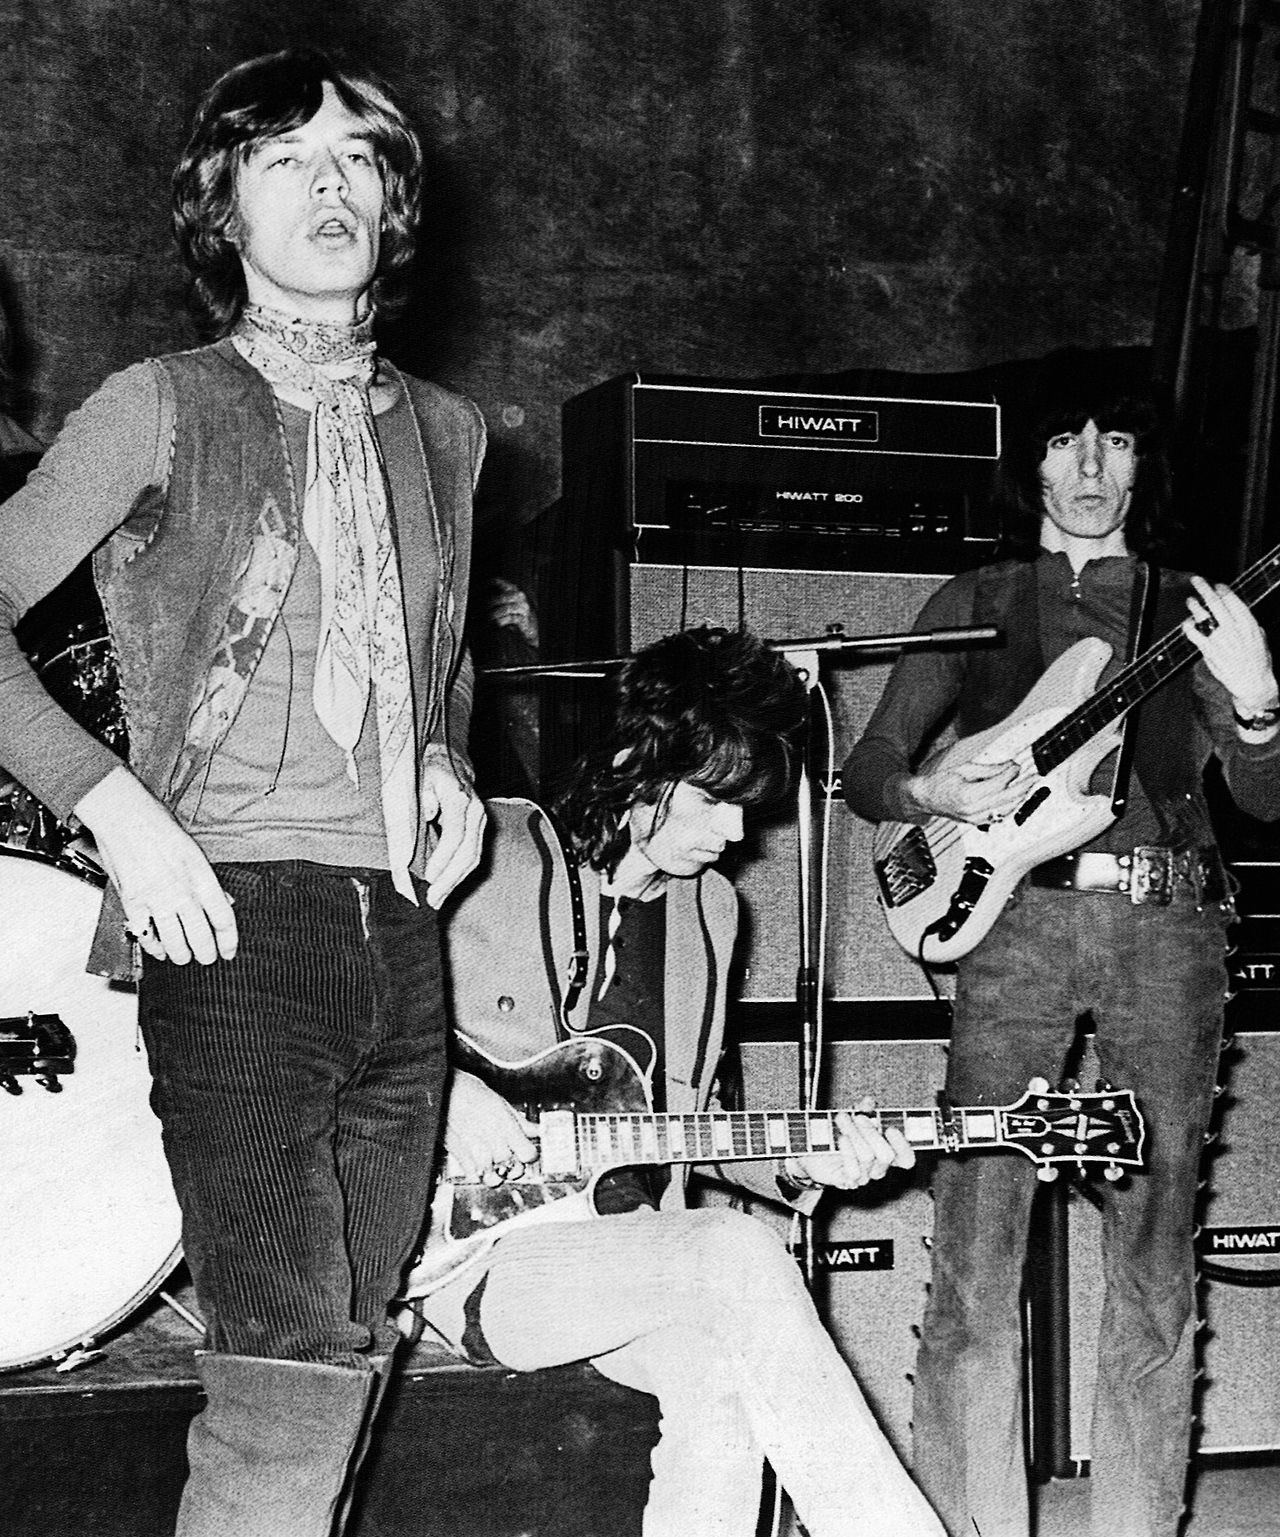 The Stones rehearse at Saville Theatre, London, December 14, 1969.